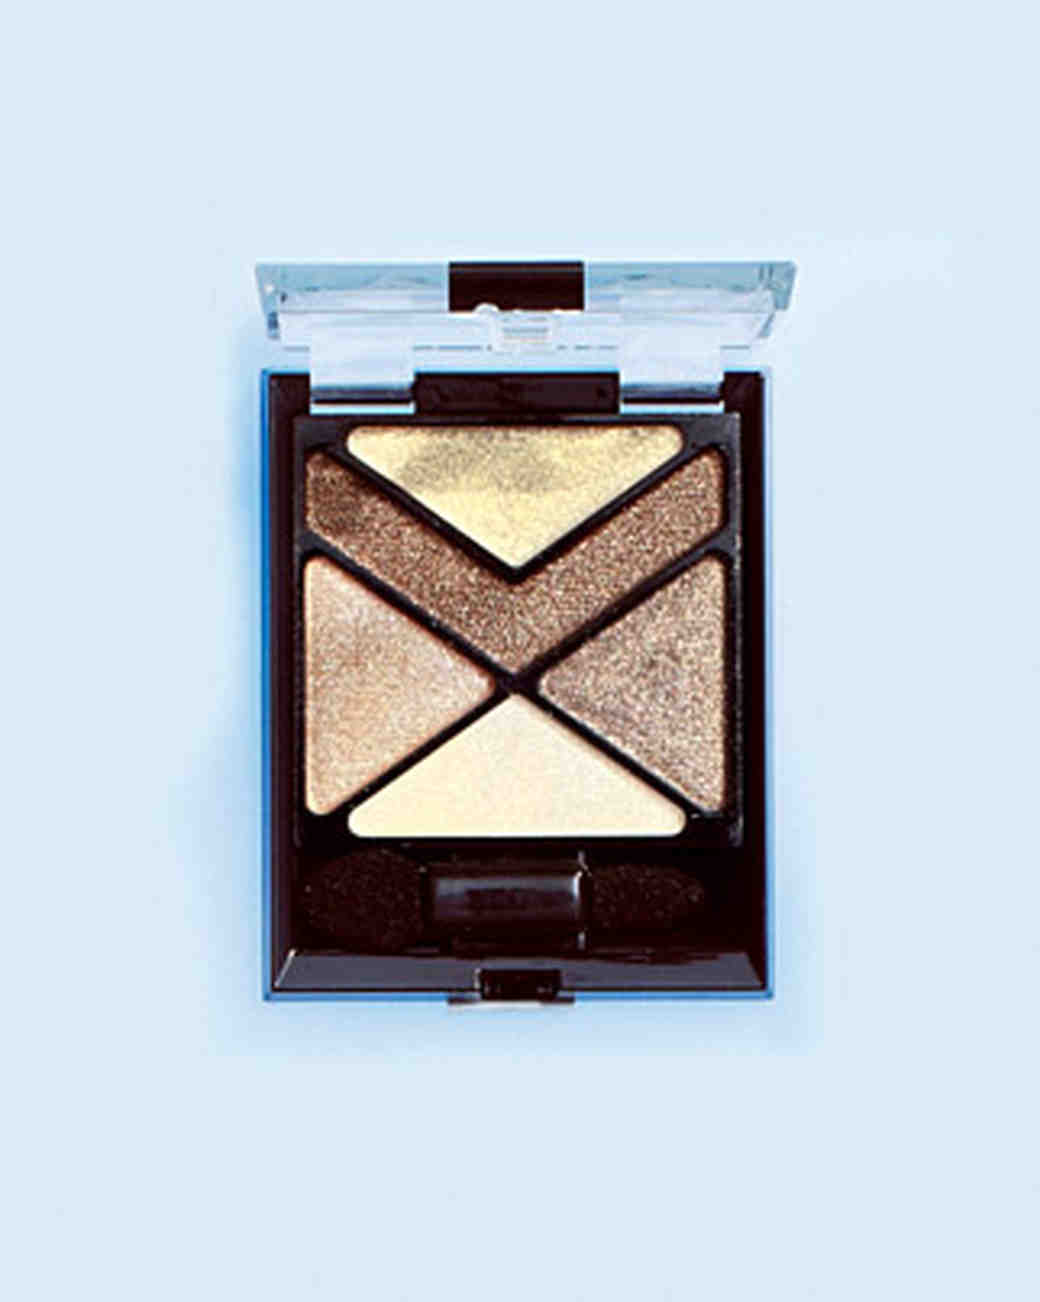 eyeshadow-in-caffeine-cosmetic-mwd107916.jpg